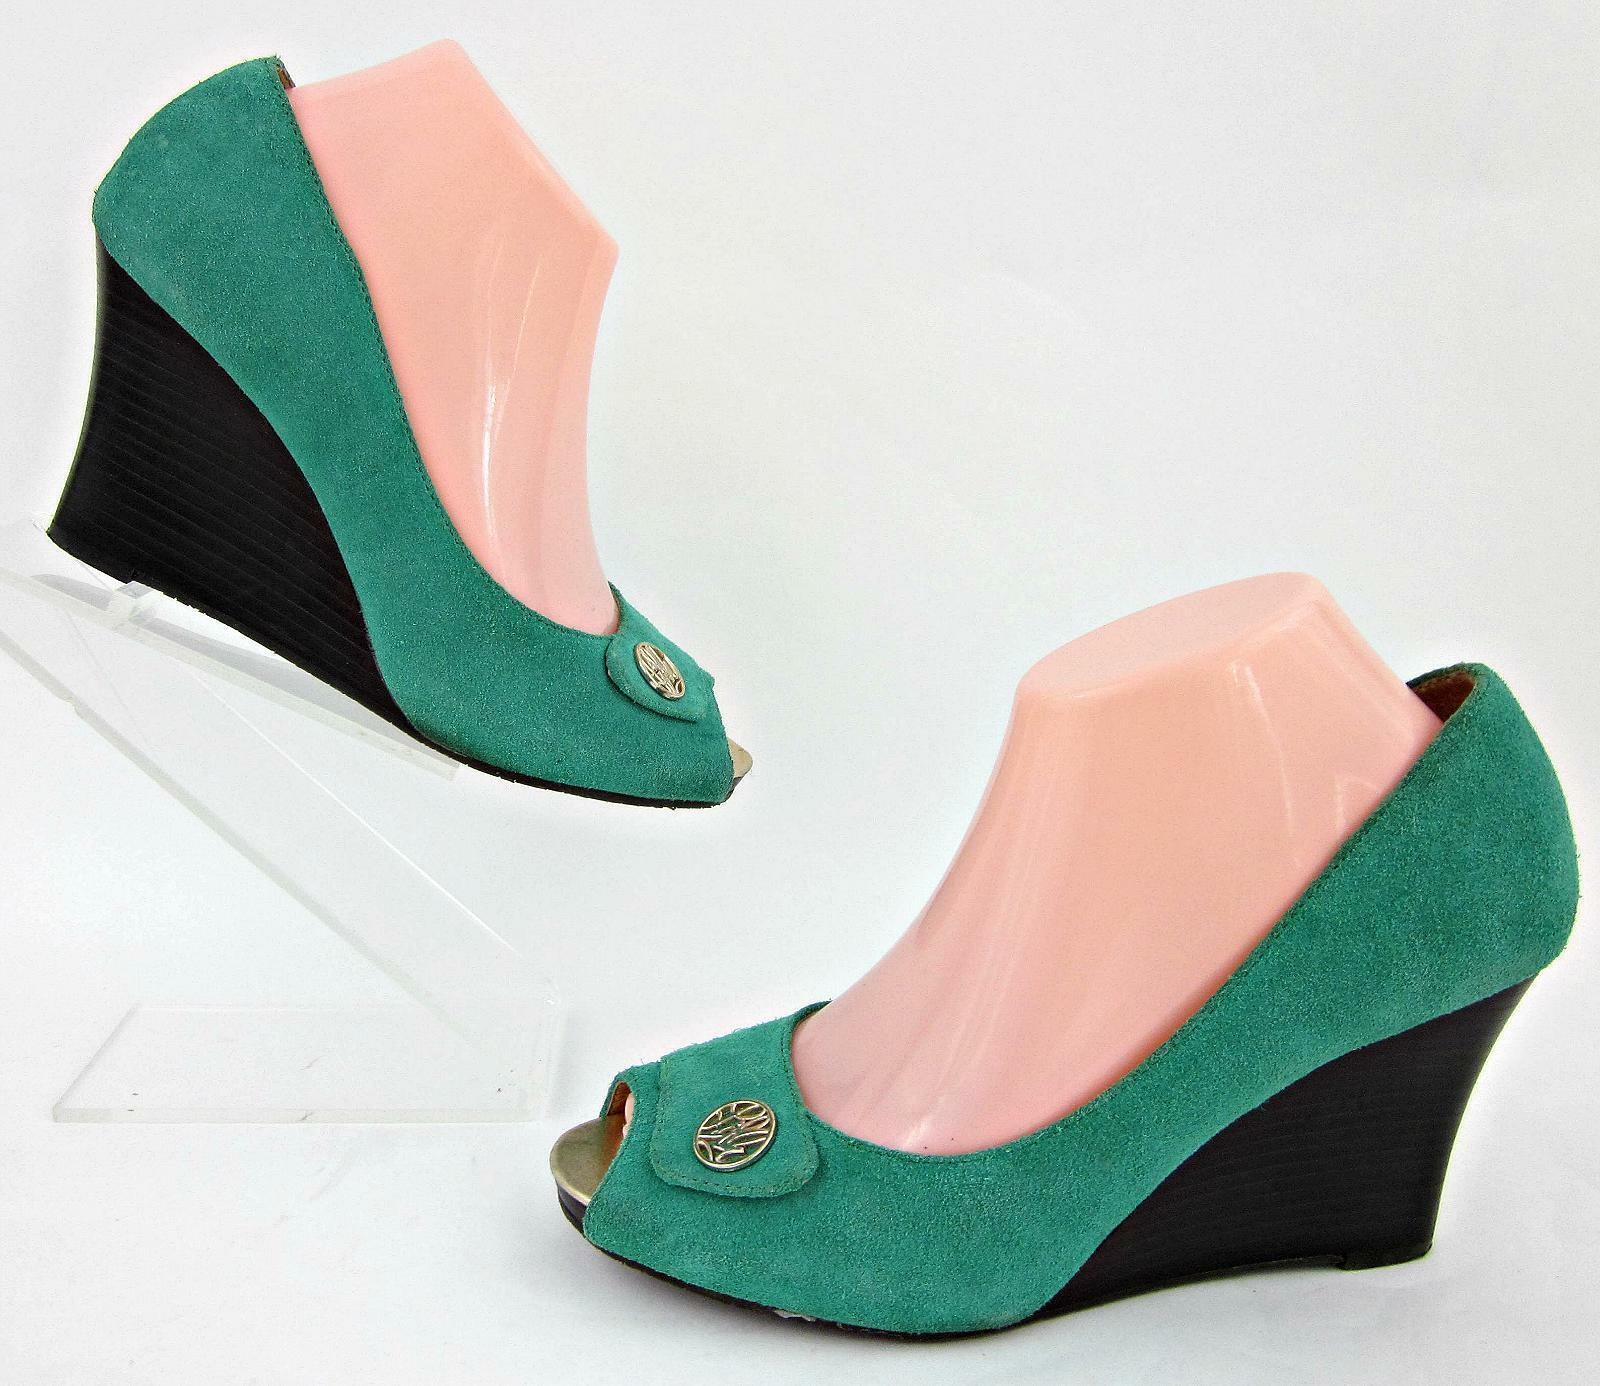 Lilly Pulitzer Resort Chic Wedges Jewel Green Suede Leder Sz 7.5M